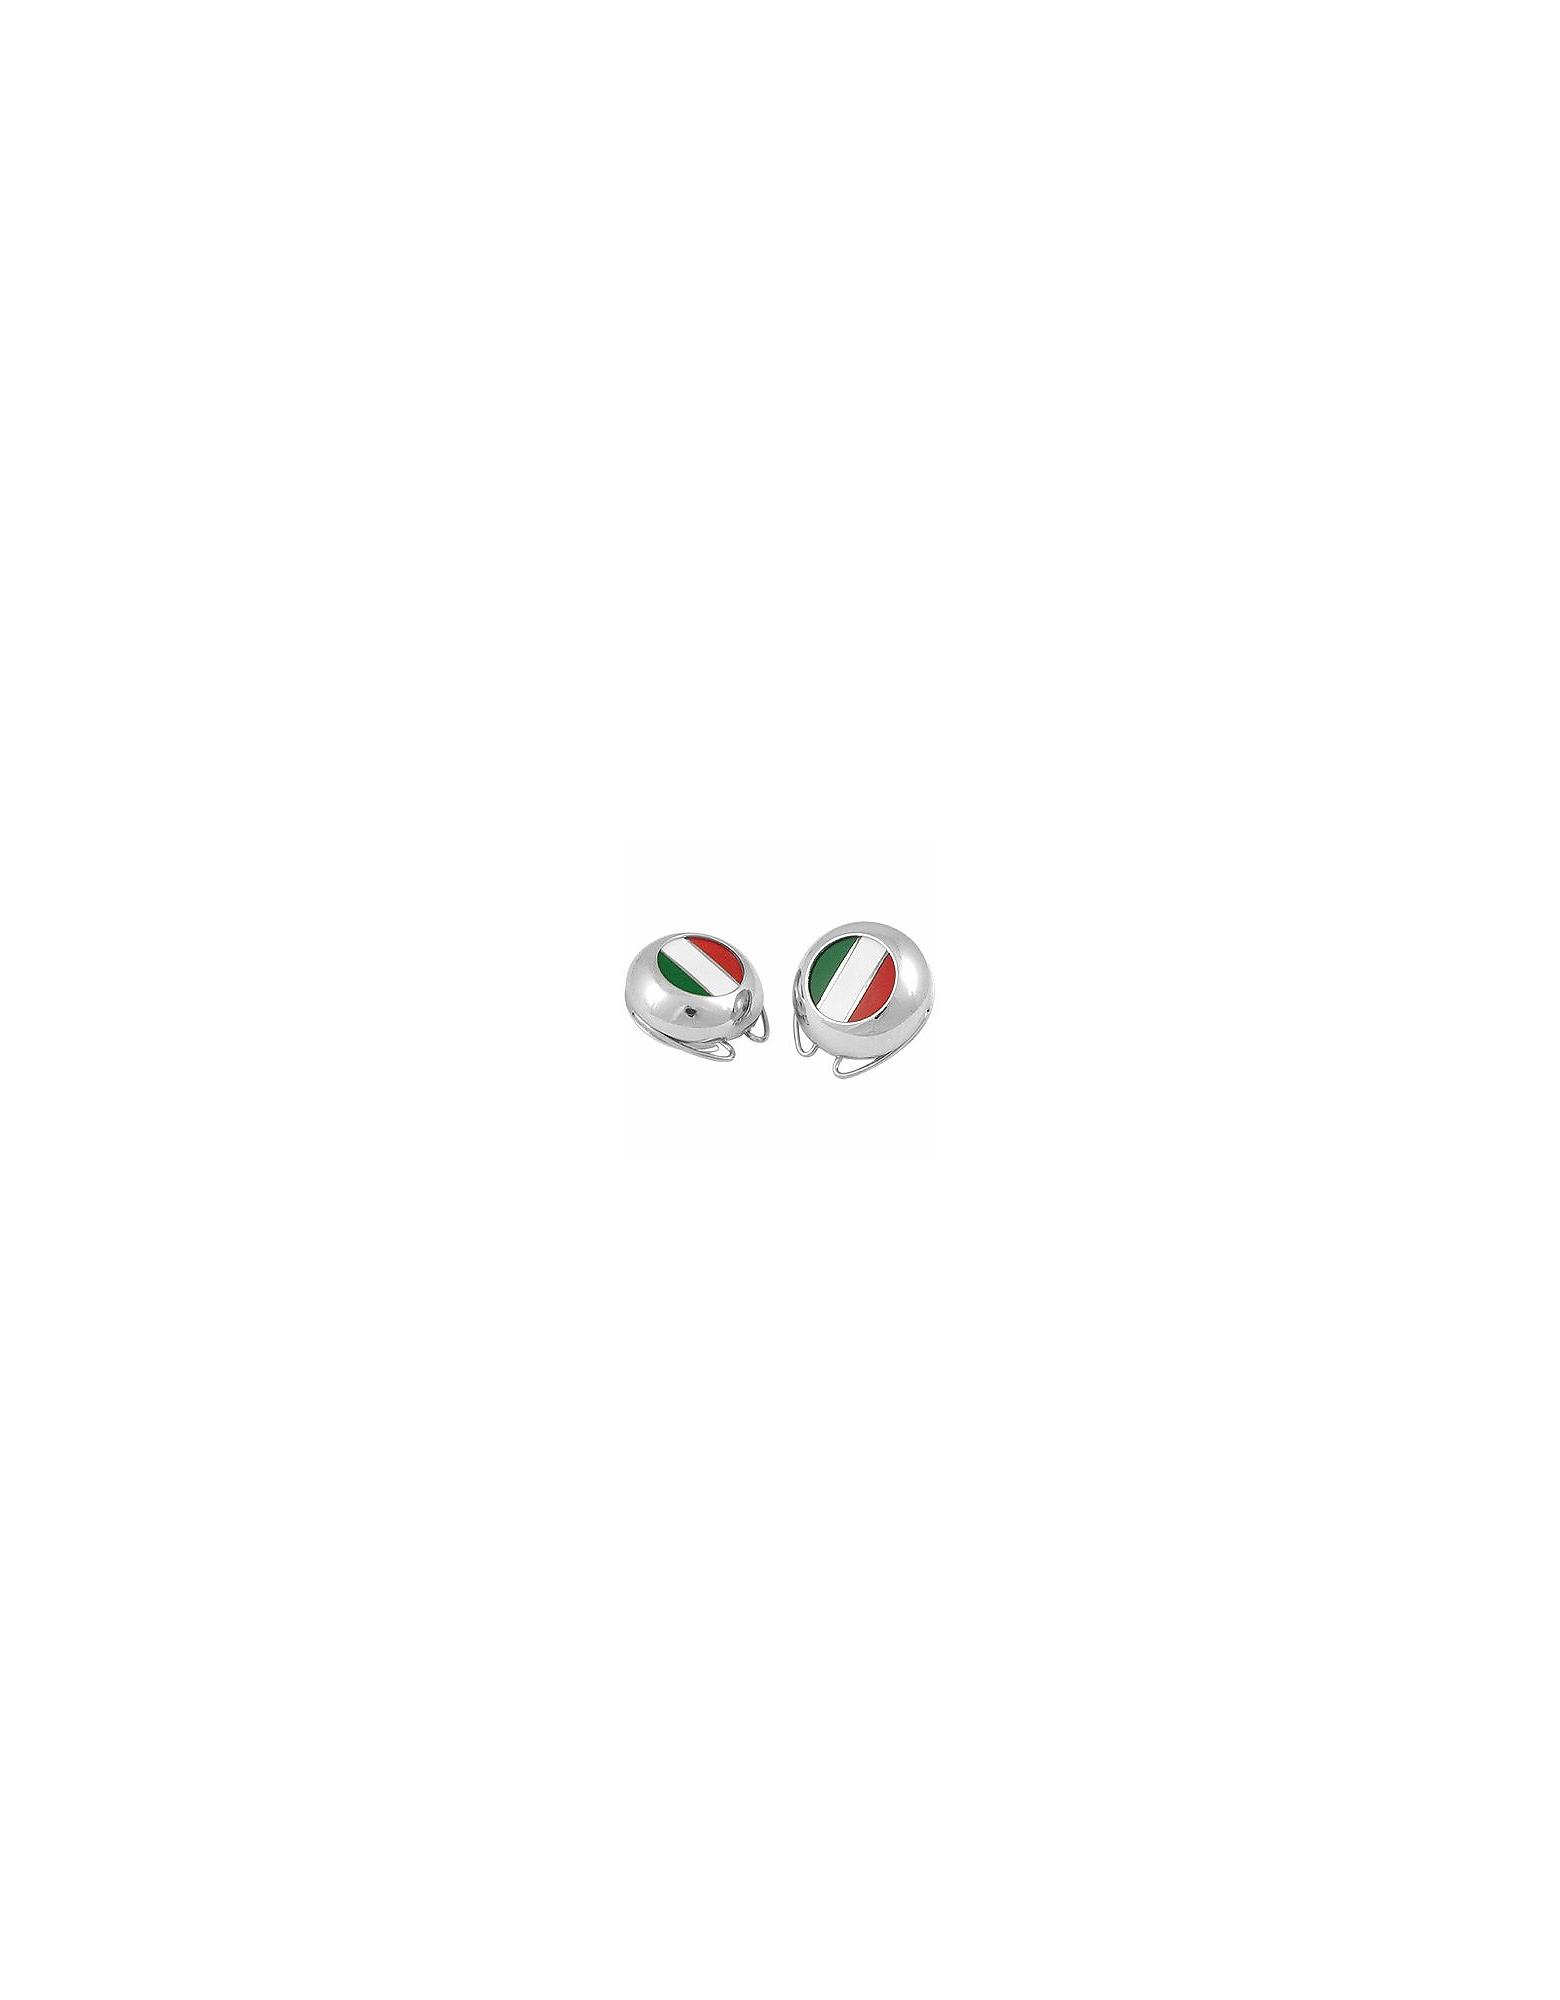 Image of Forzieri Designer Button Covers, Italian Flag Silver Plated Button Covers